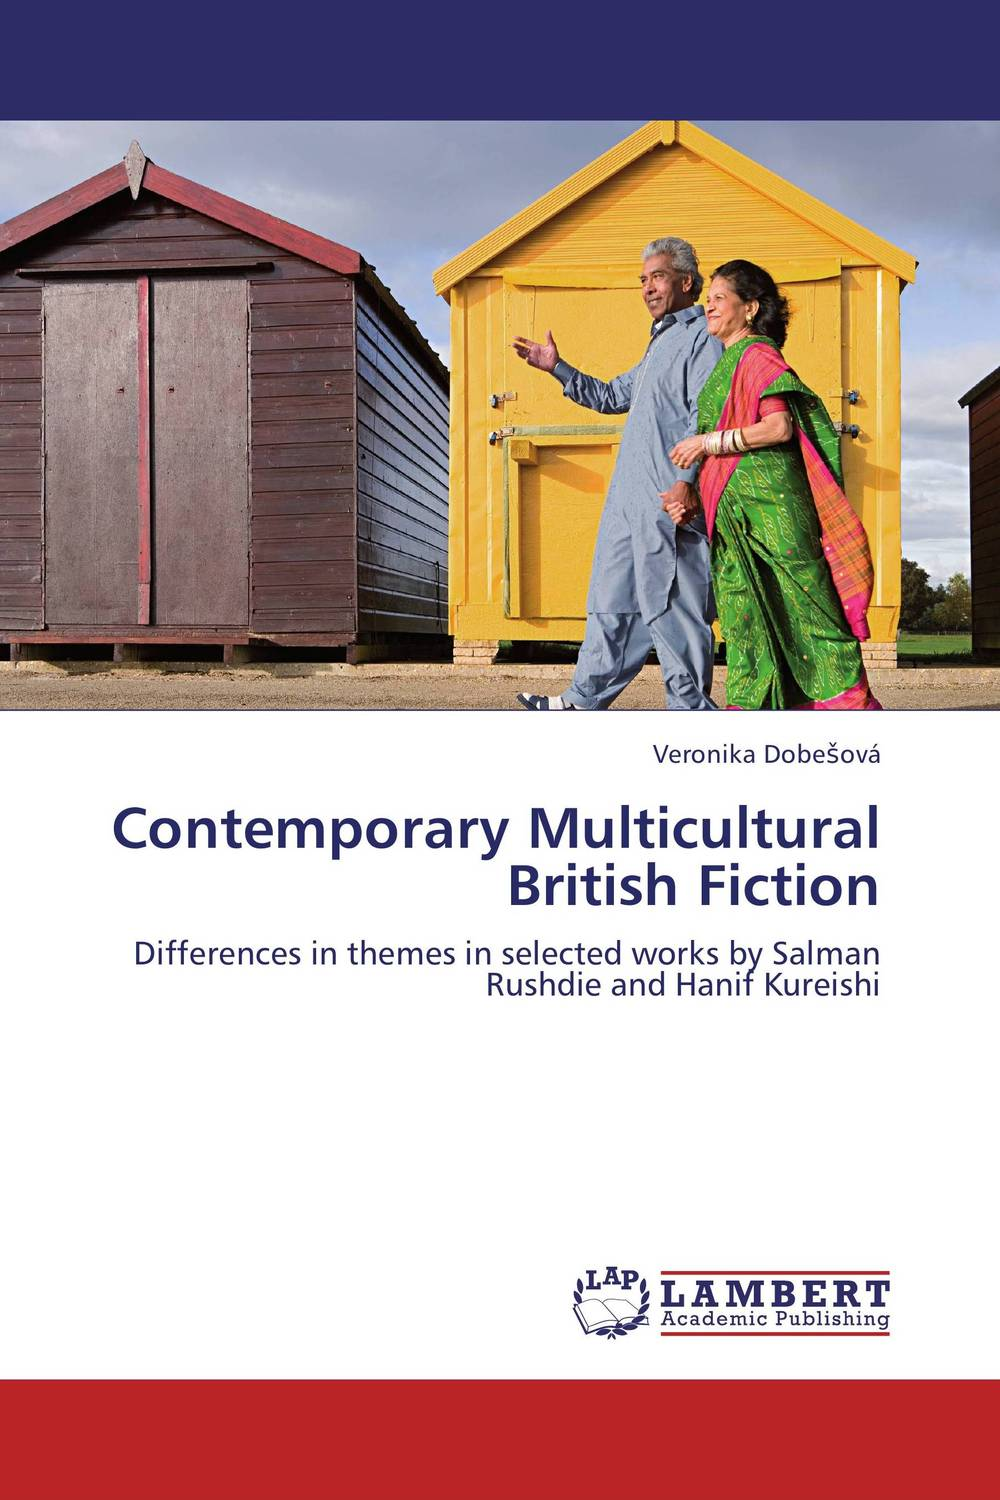 Contemporary Multicultural British Fiction faulks on fiction